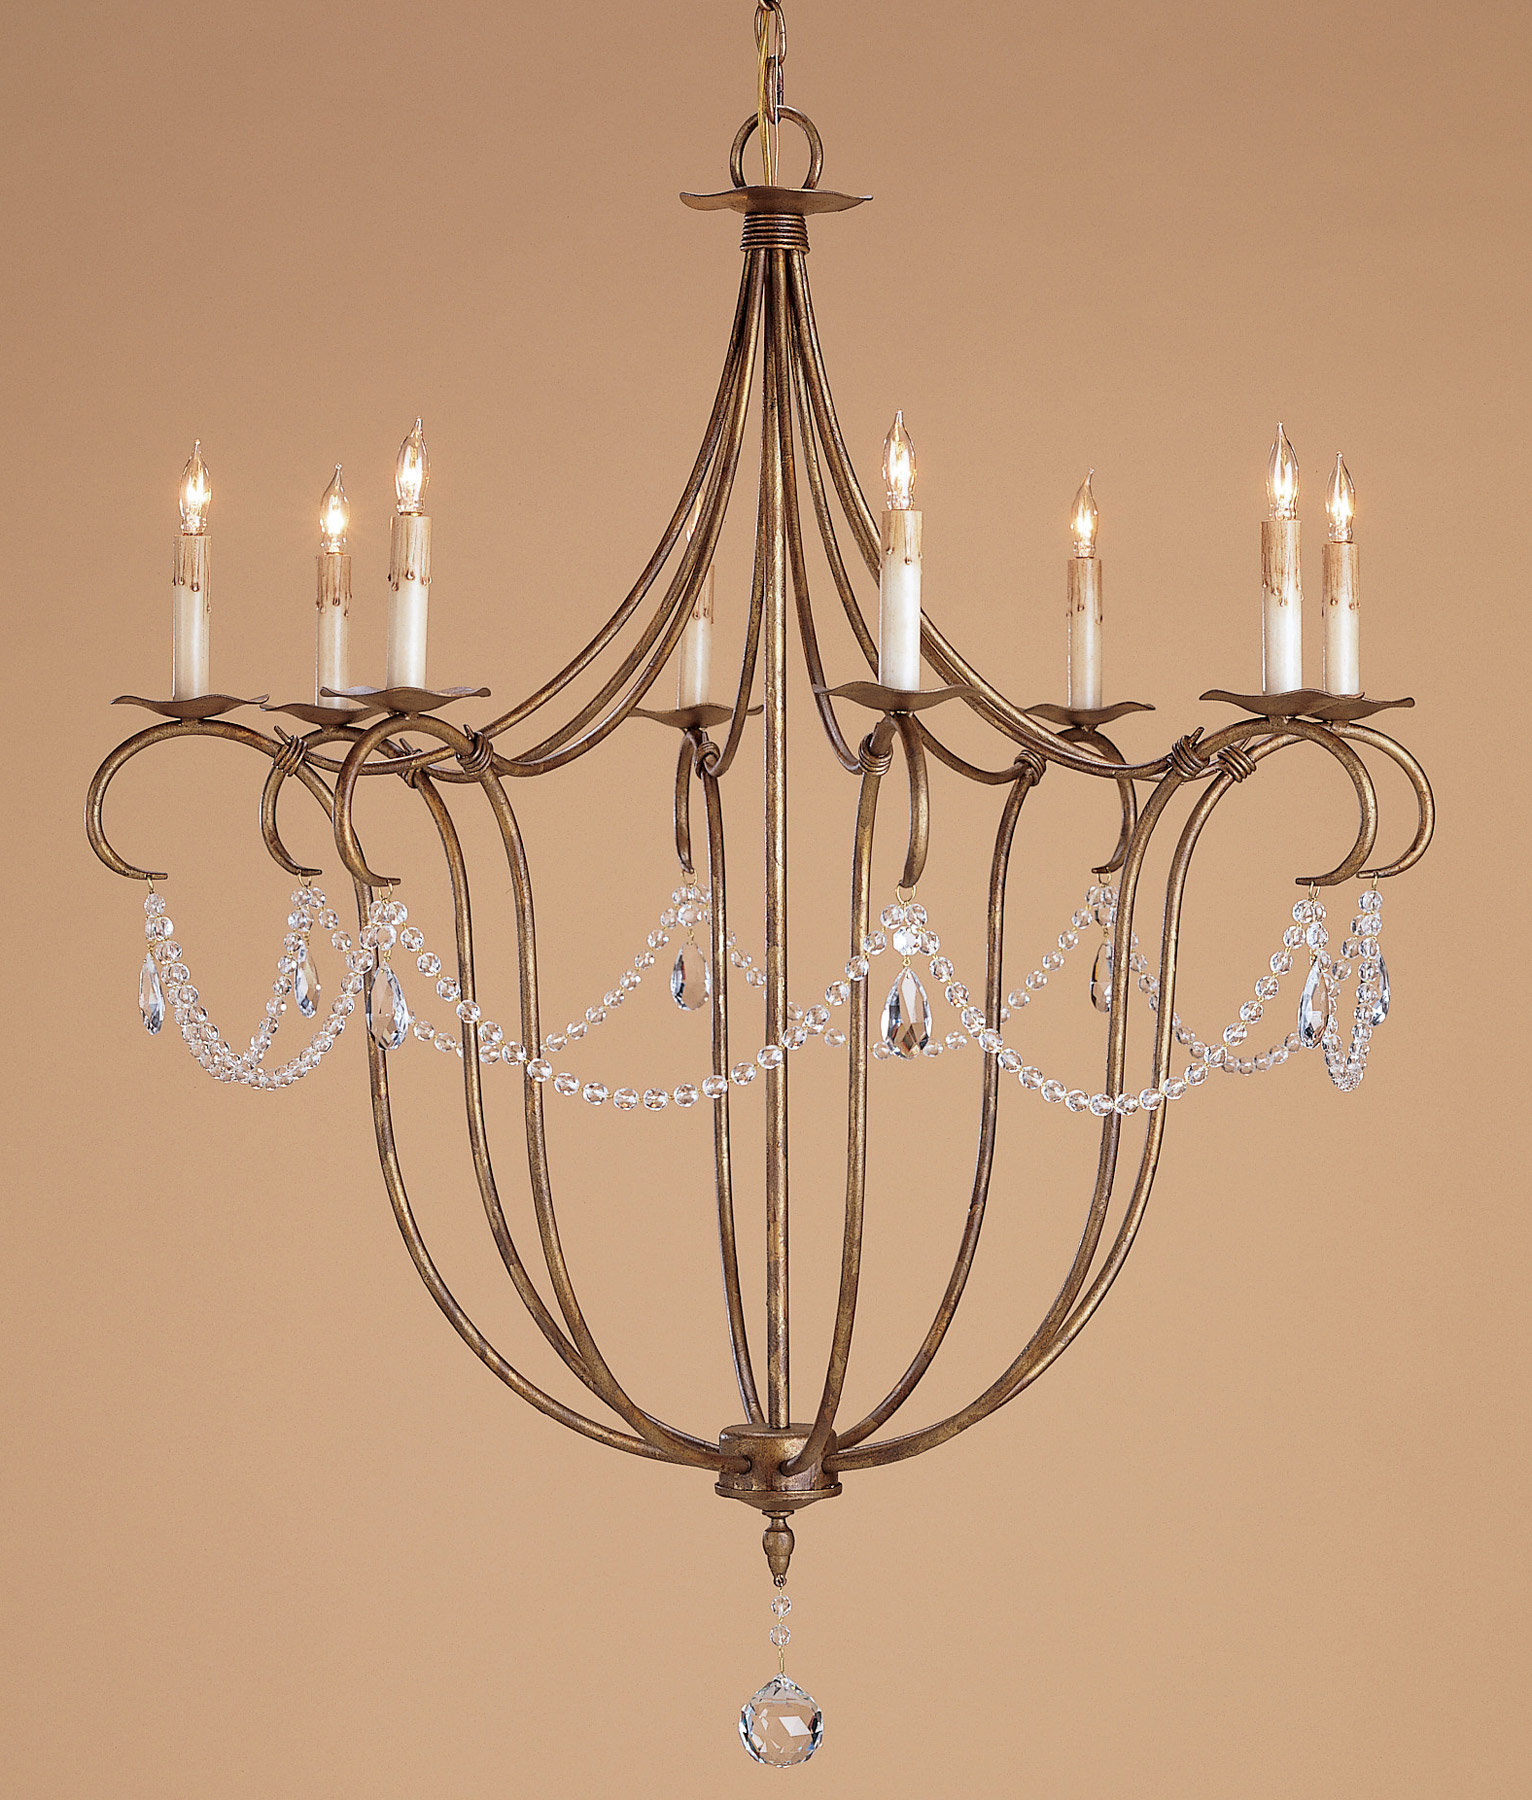 And company 9881 crystal lights eight light chandelier currey and company 9881 crystal lights eight light chandelier arubaitofo Image collections